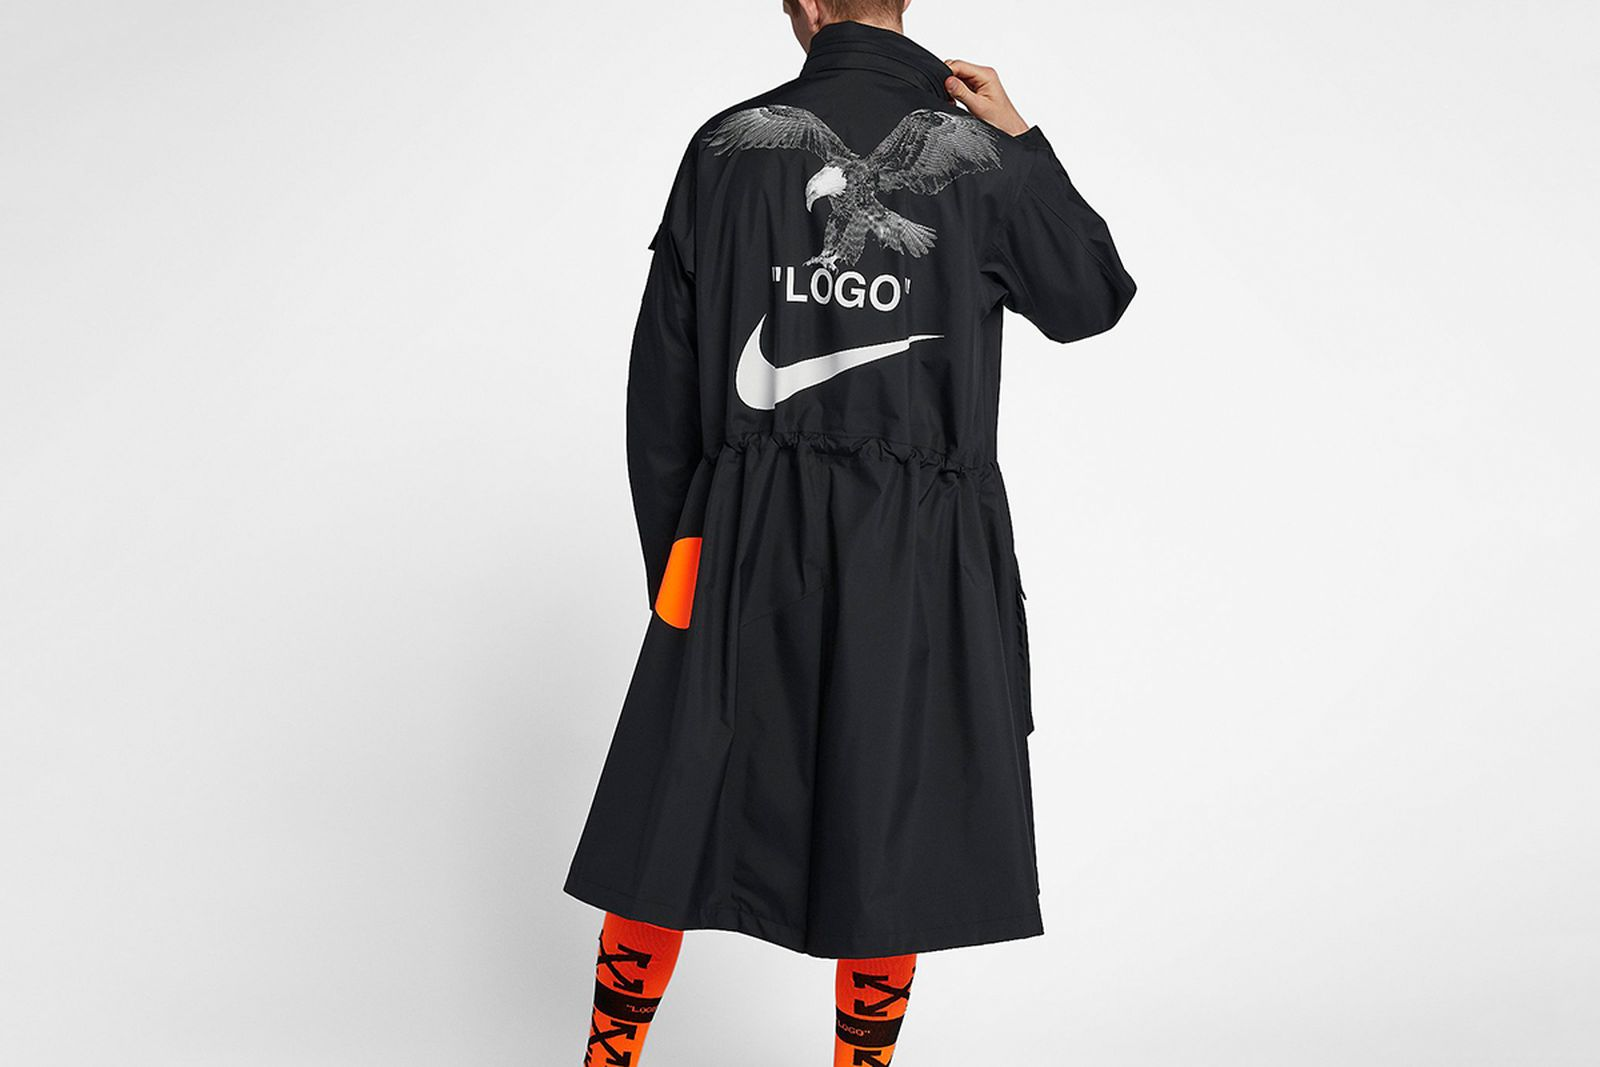 jacket3 2018 FIFA World Cup Nike OFF-WHITE c/o Virgil Abloh